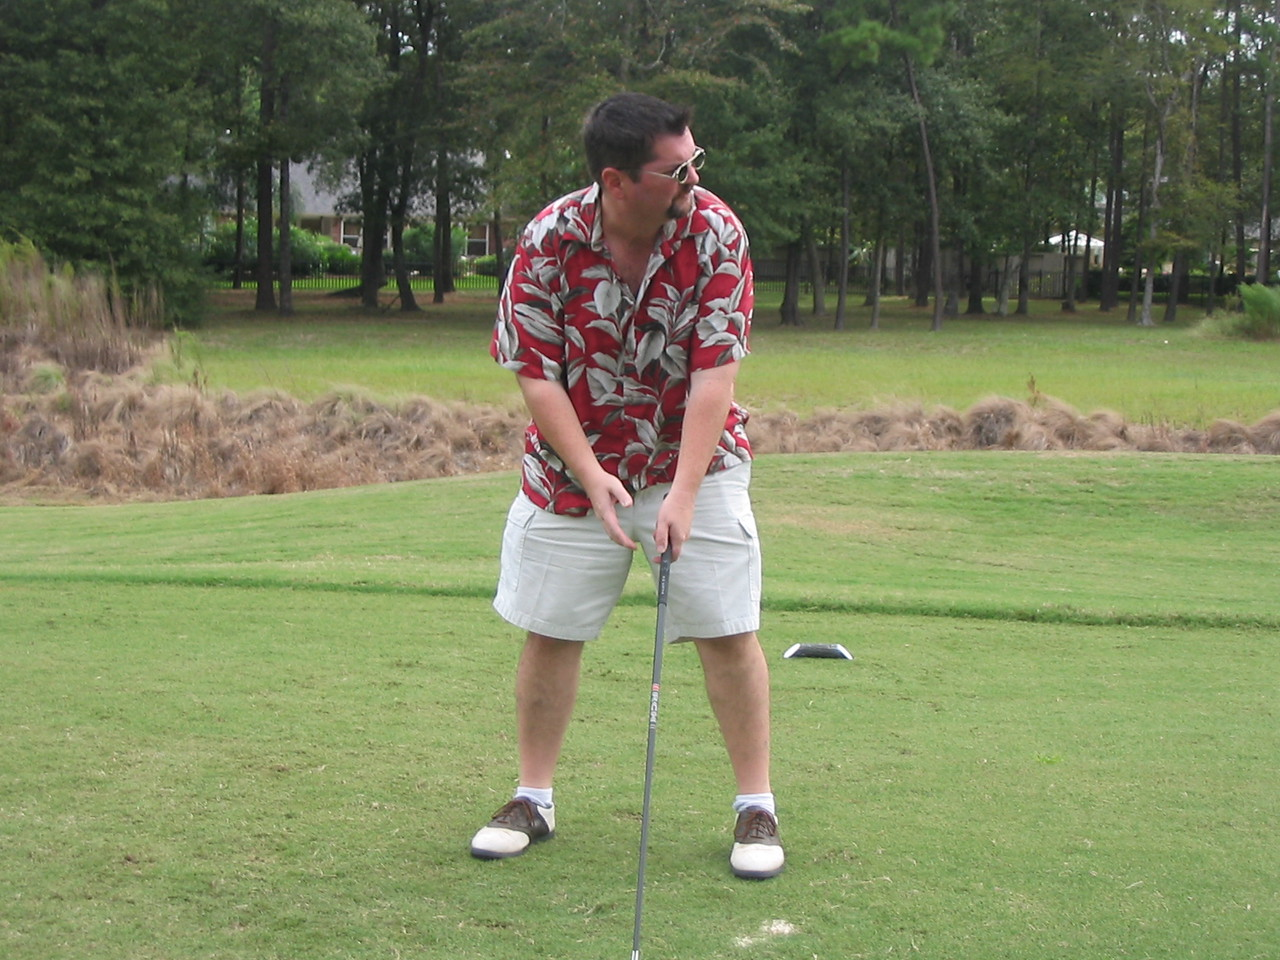 RB aligning his tee shot